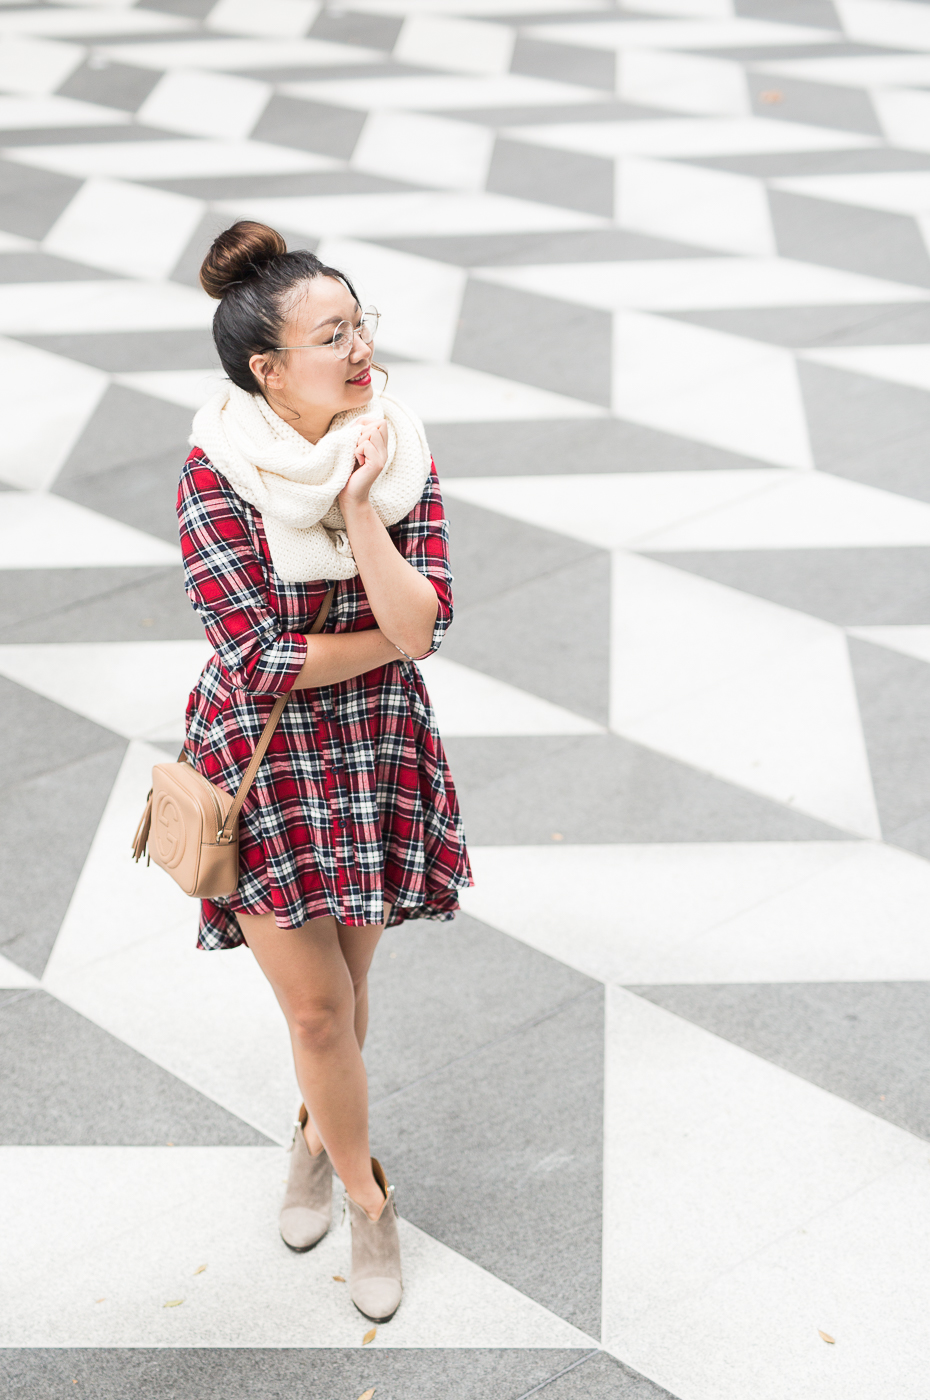 Cuyana alpaca scarf & ASOS plaid dress | The Chic Diary